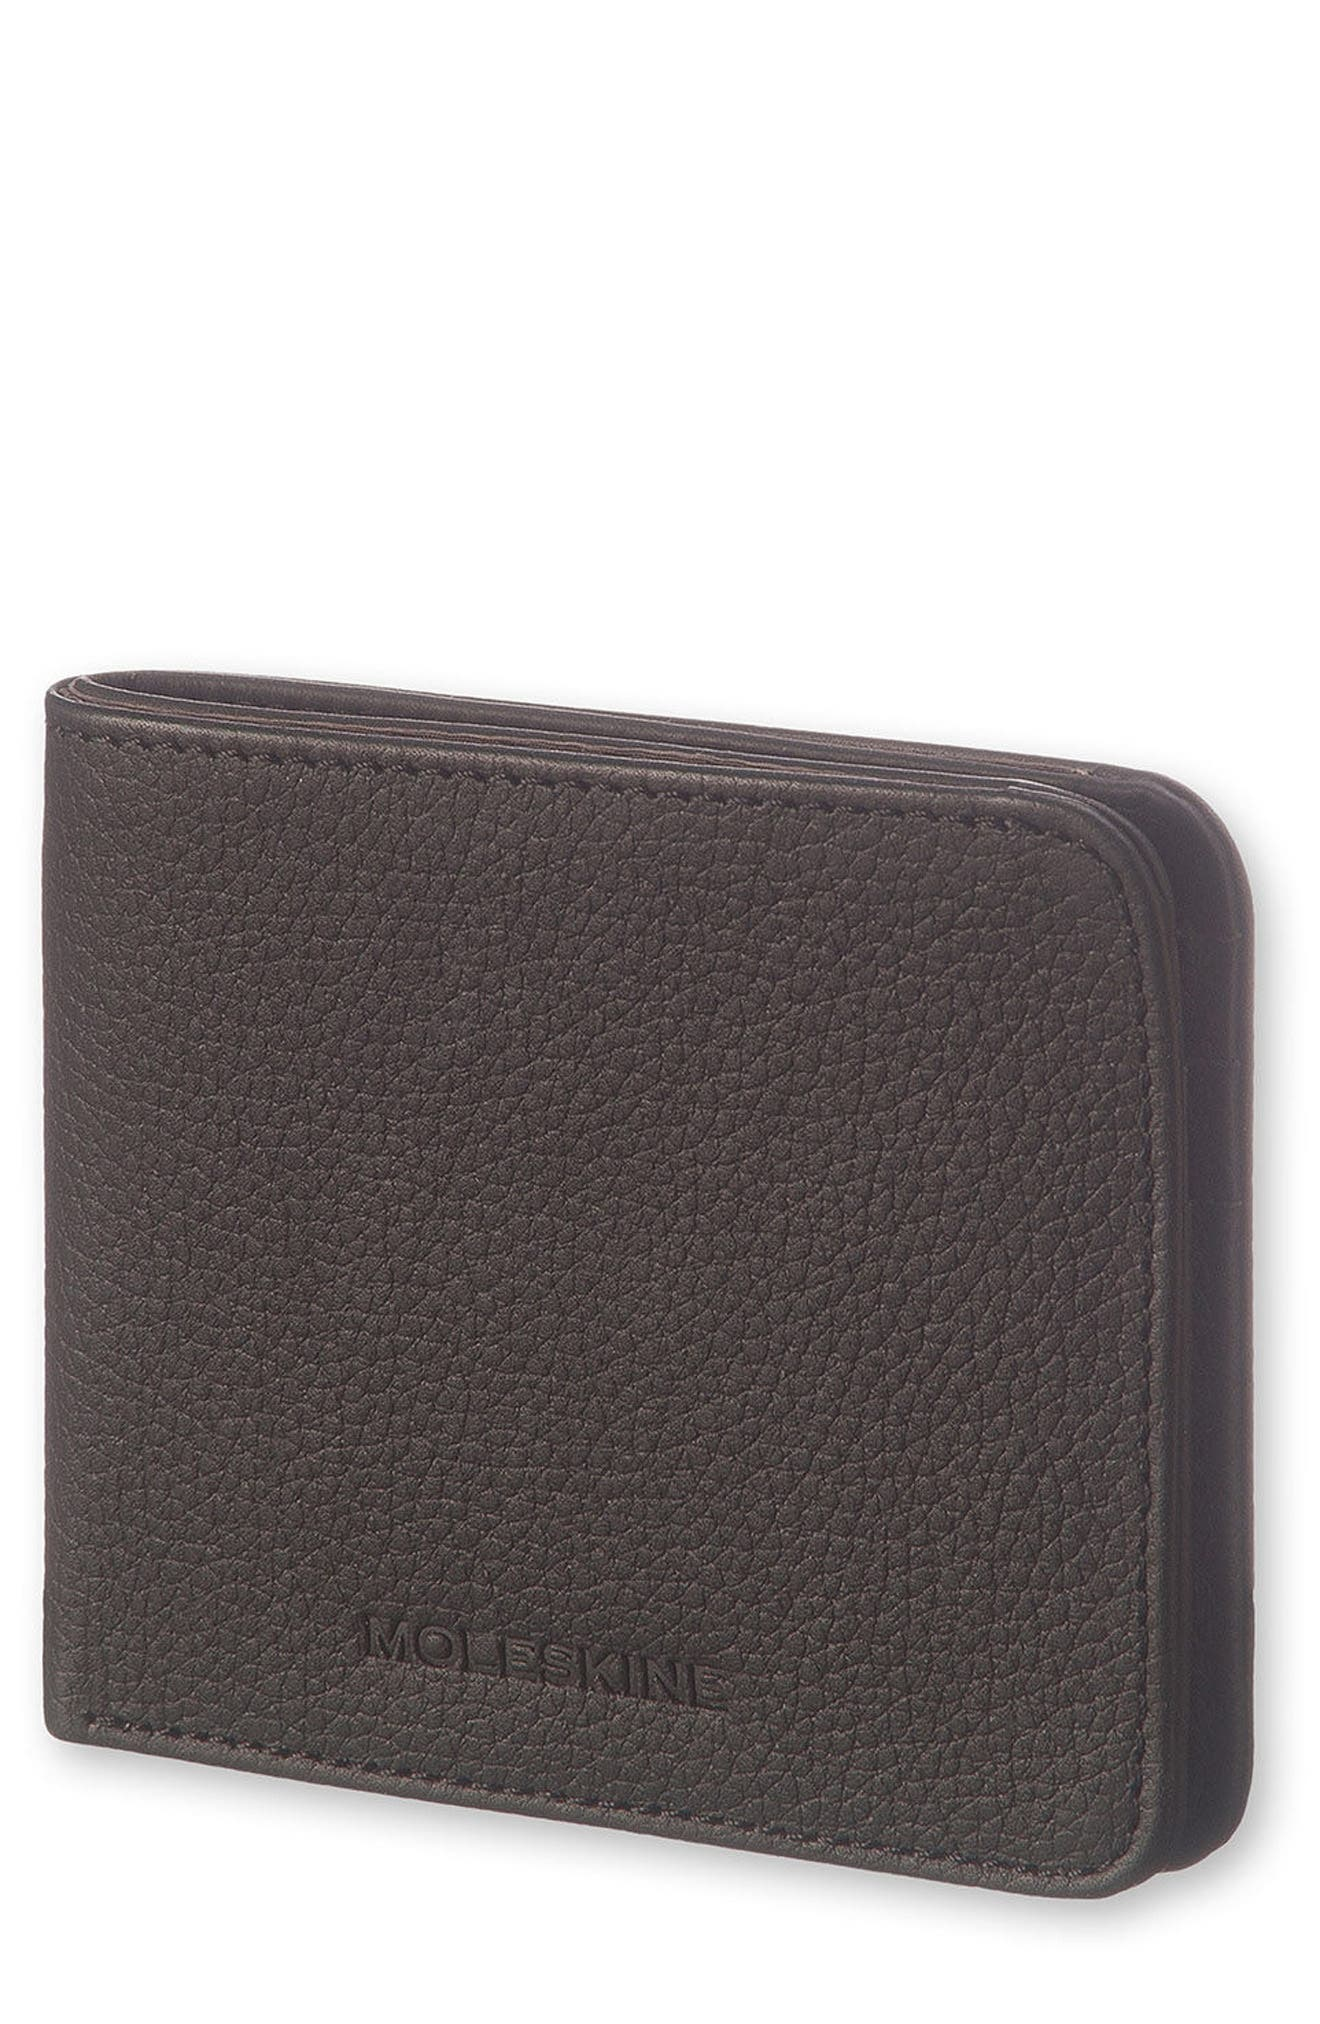 Lineage Leather Wallet,                             Main thumbnail 1, color,                             BLACK